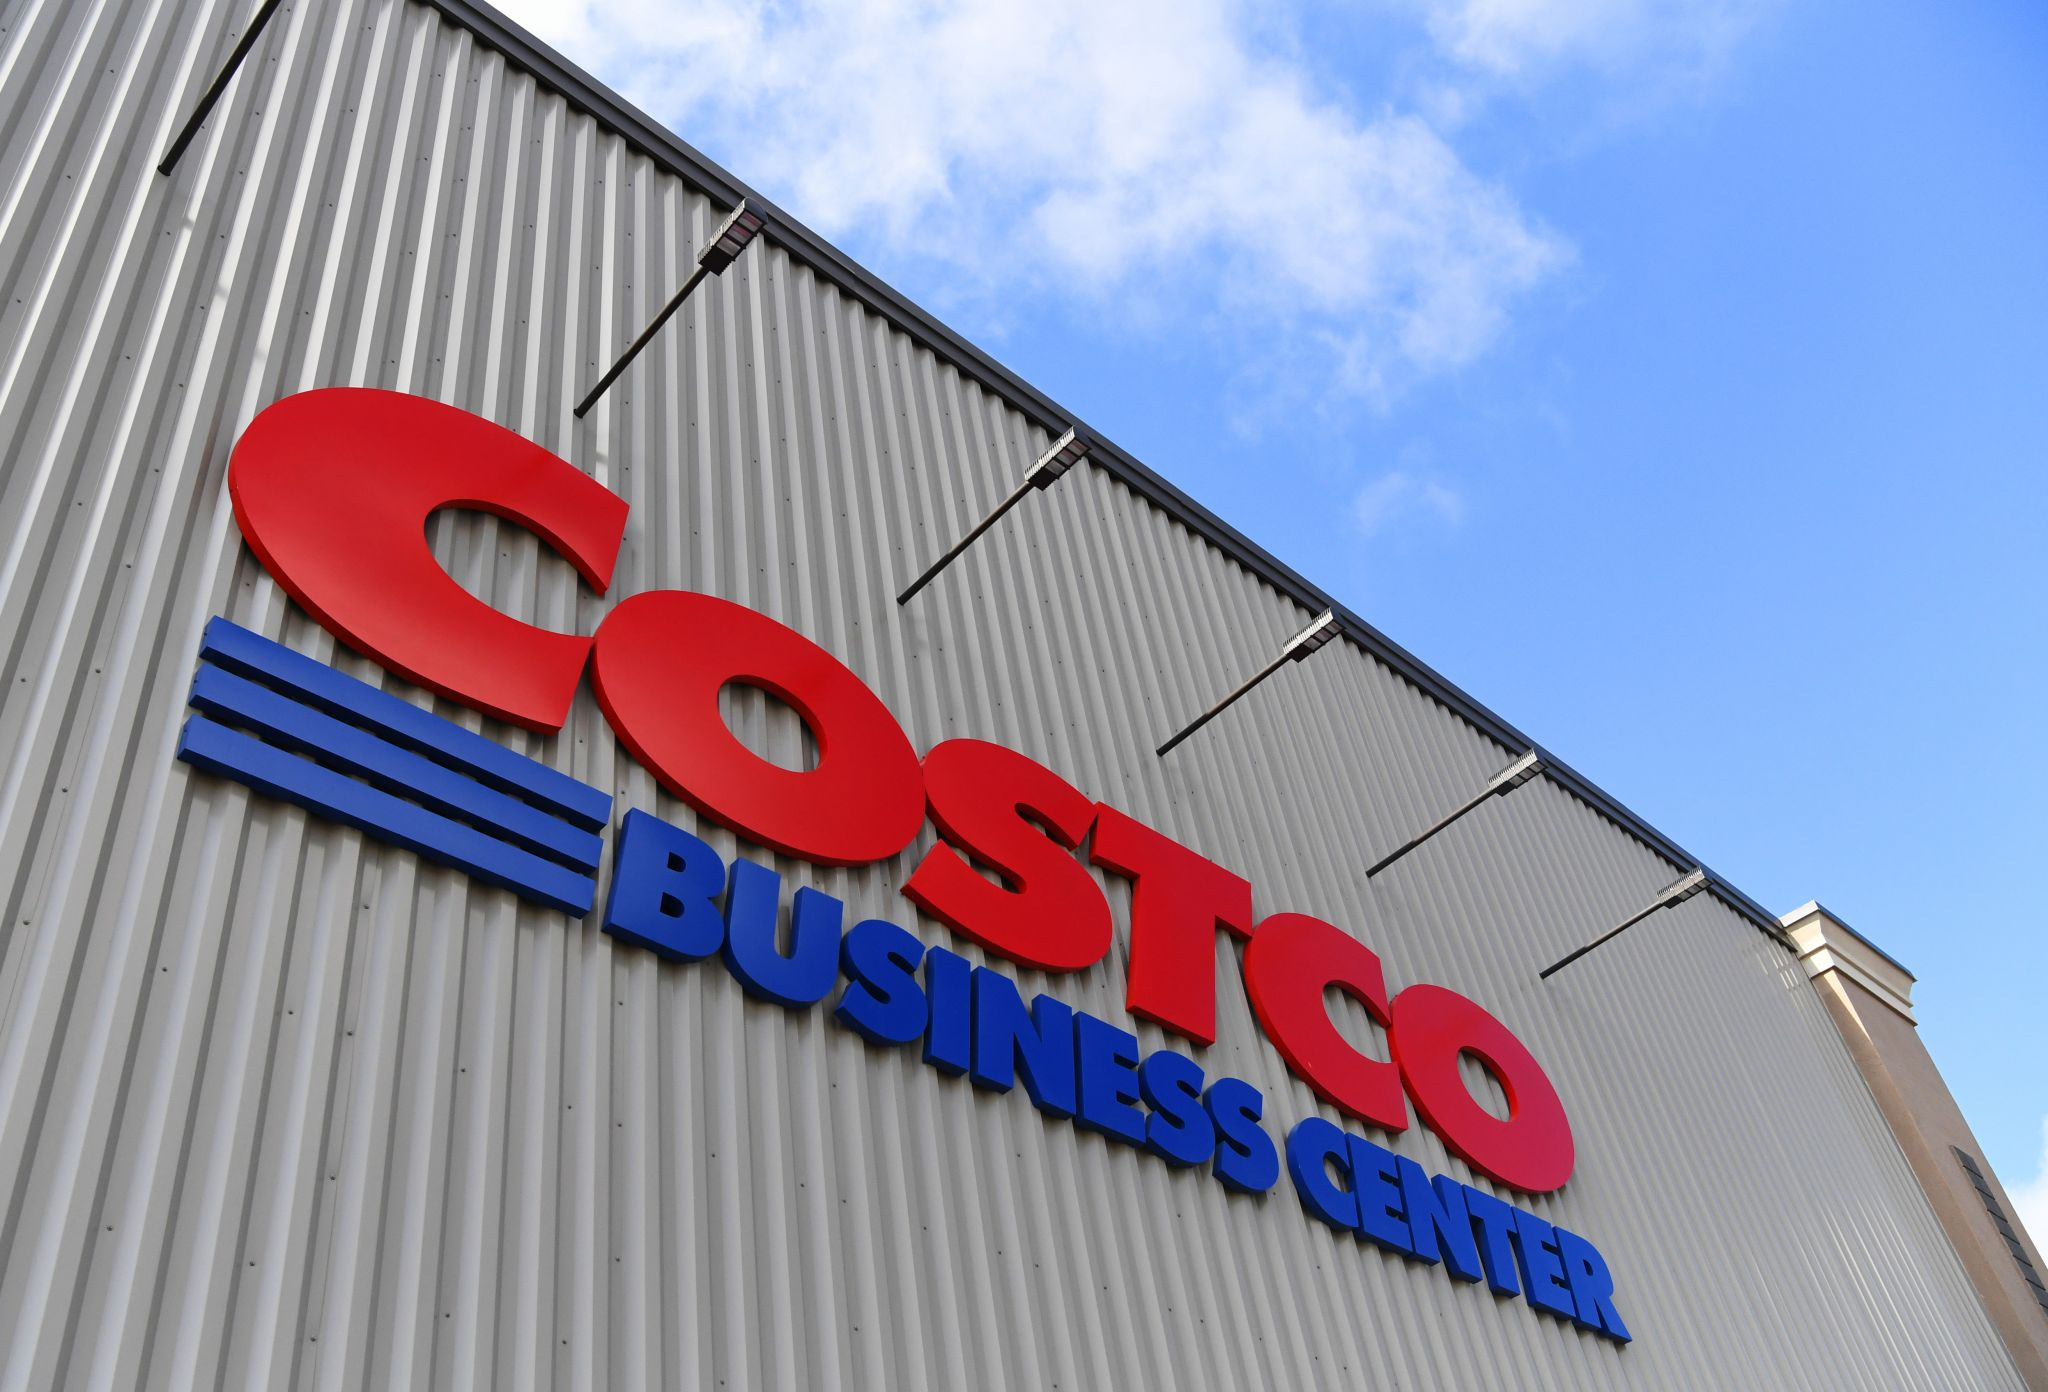 Couple weds at Costco: \'It just made sense\' - SFGate